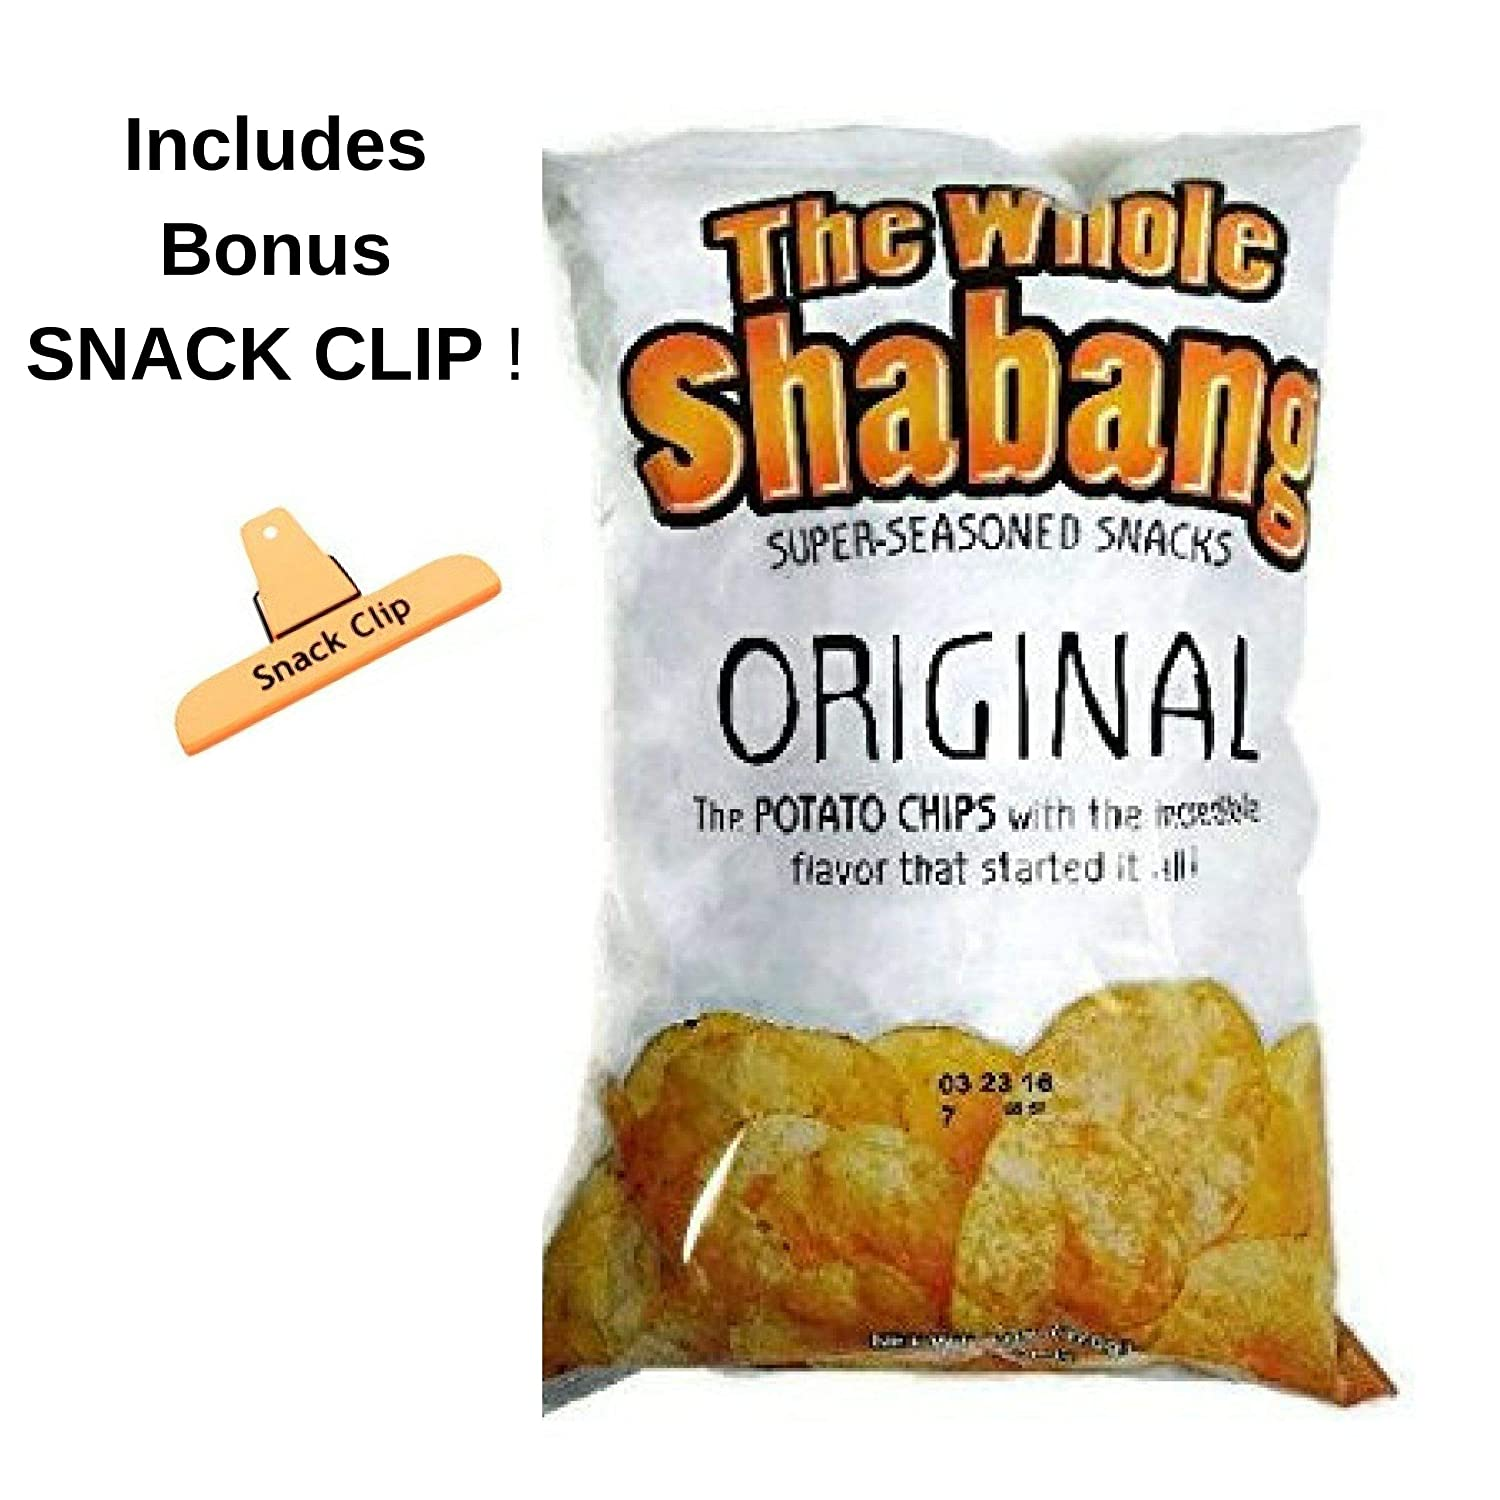 The Whole Shabang Potato Chips - (1) - 6 oz  Bag